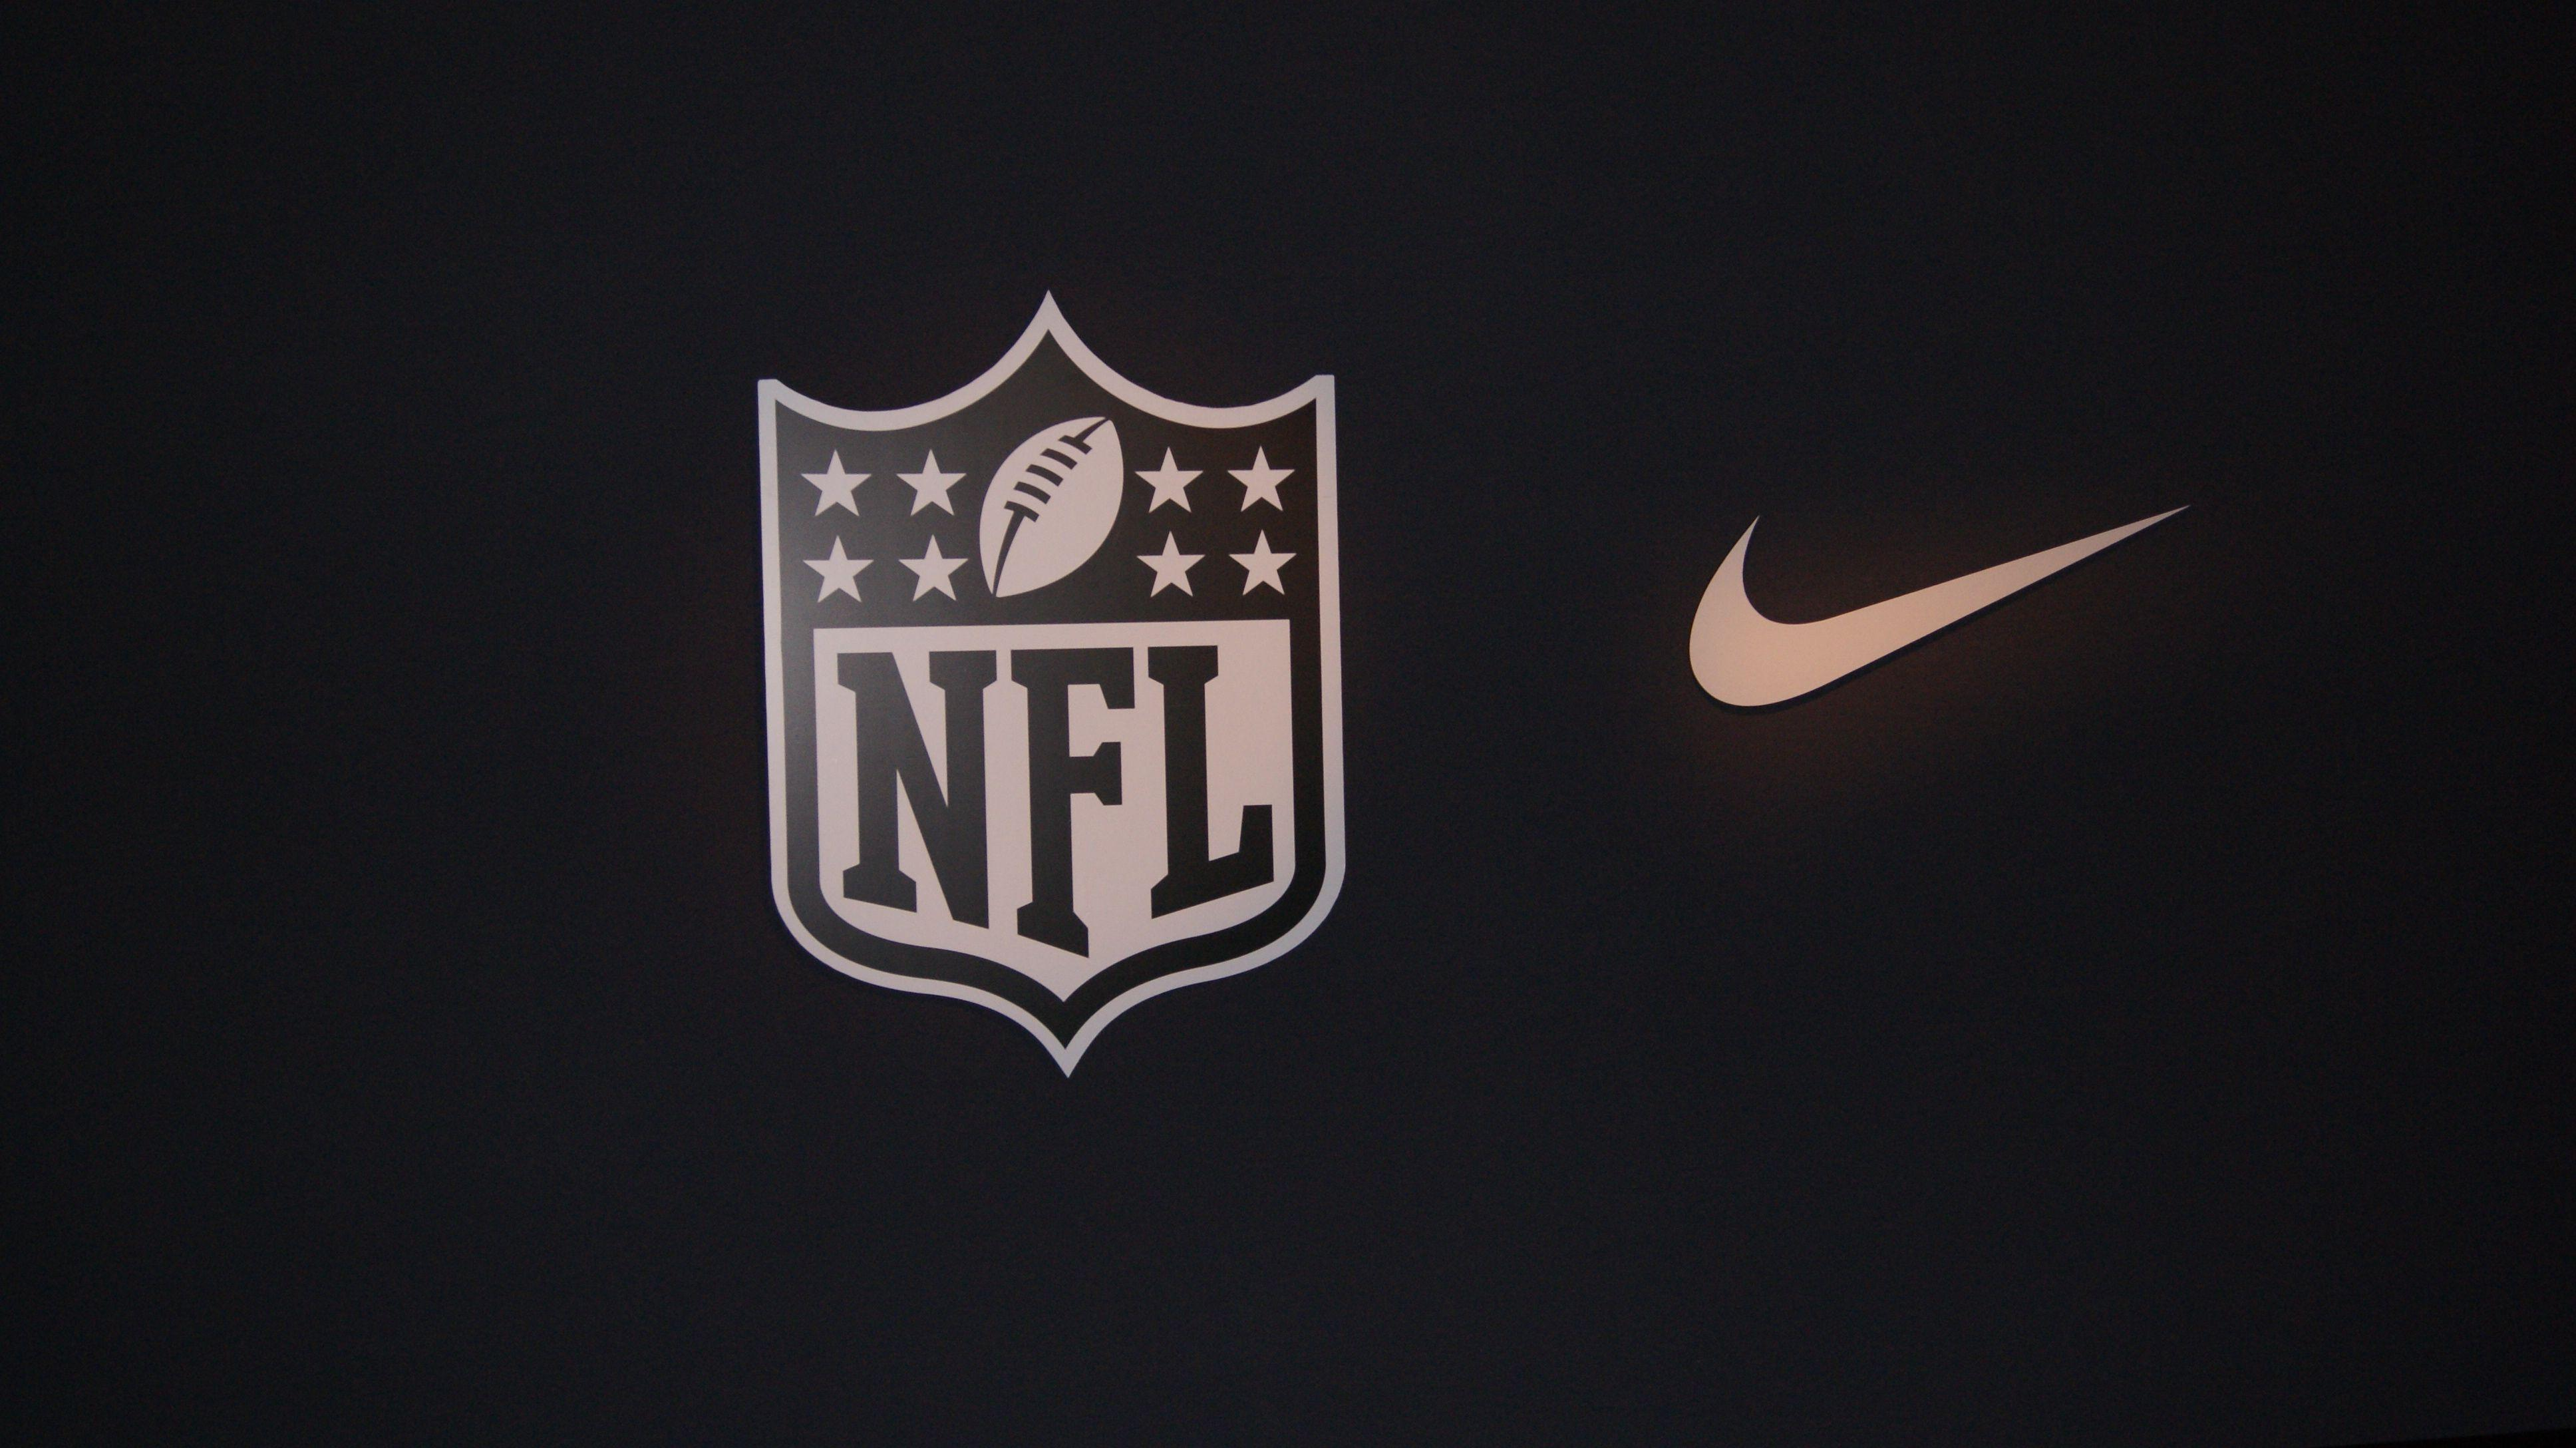 nike logo wallpapers hd 2016 wallpaper cave